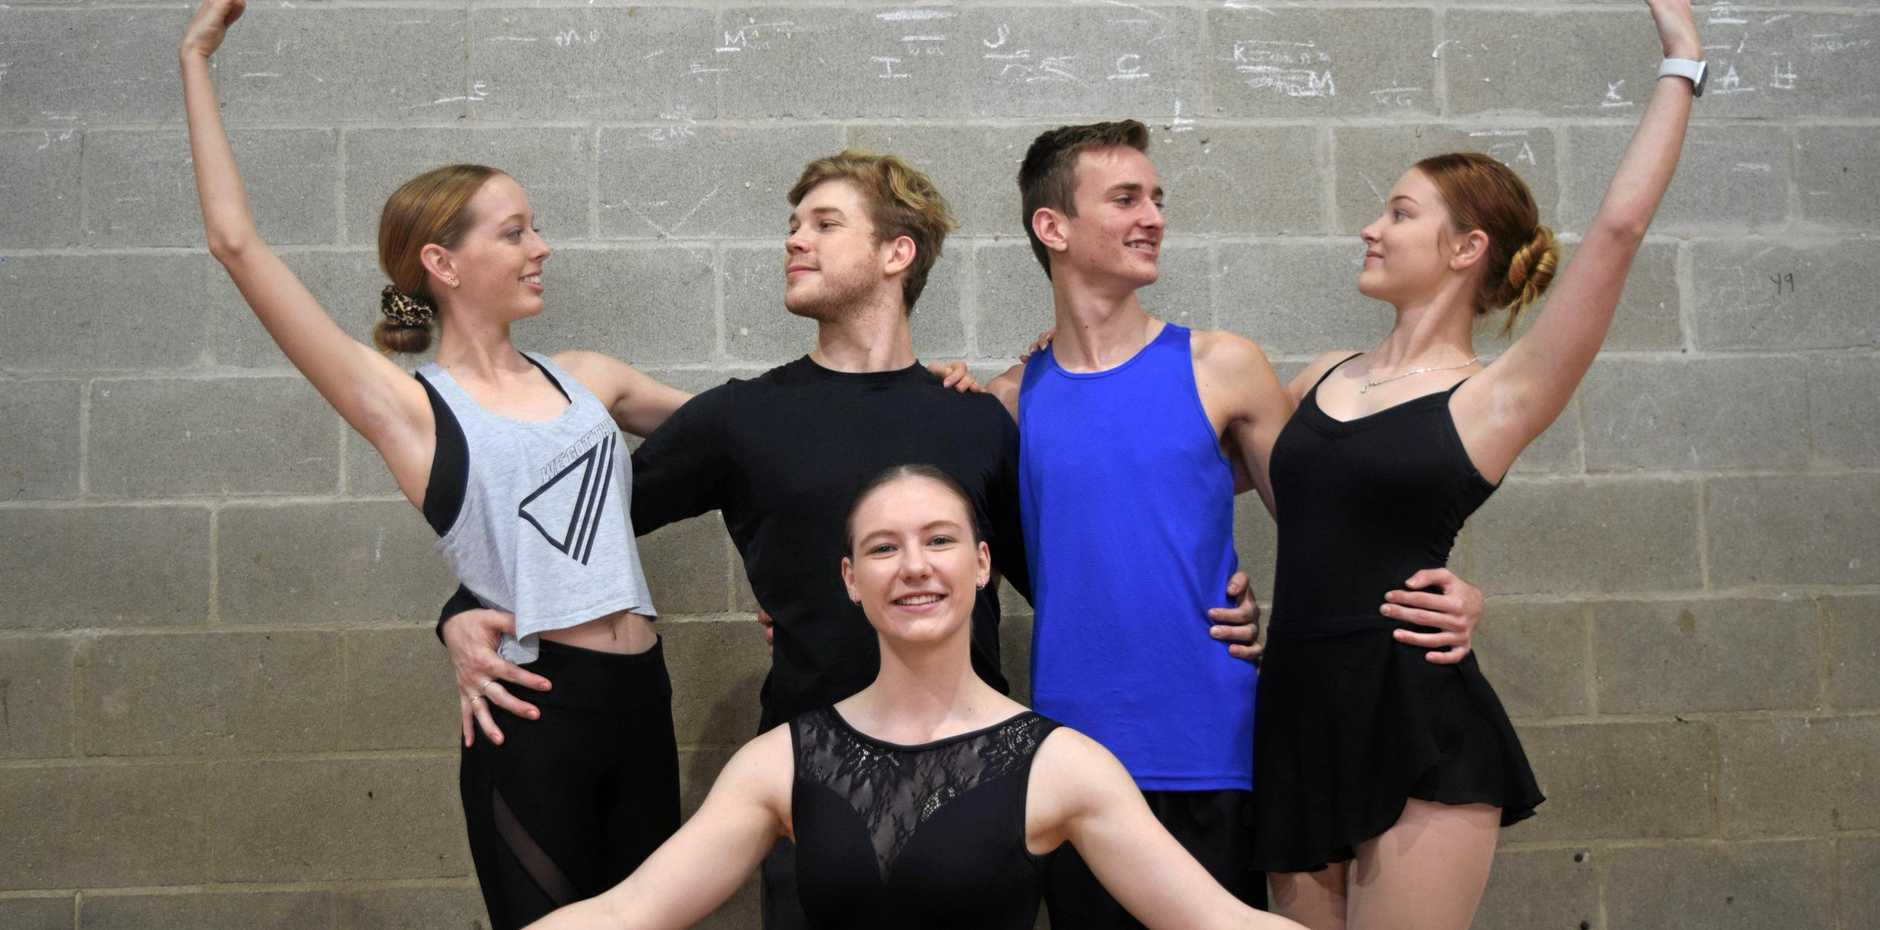 LIFE LESSONS: Queensland Ballet dancer Rian Thompson (second from left) has been passing on advice to help the development of Fame Talent School's Sophie Van Moolenbrouk, 15, Tiernan McCallum, 16, Lilly Hayes, 17, and Charlotte Meads, 15.